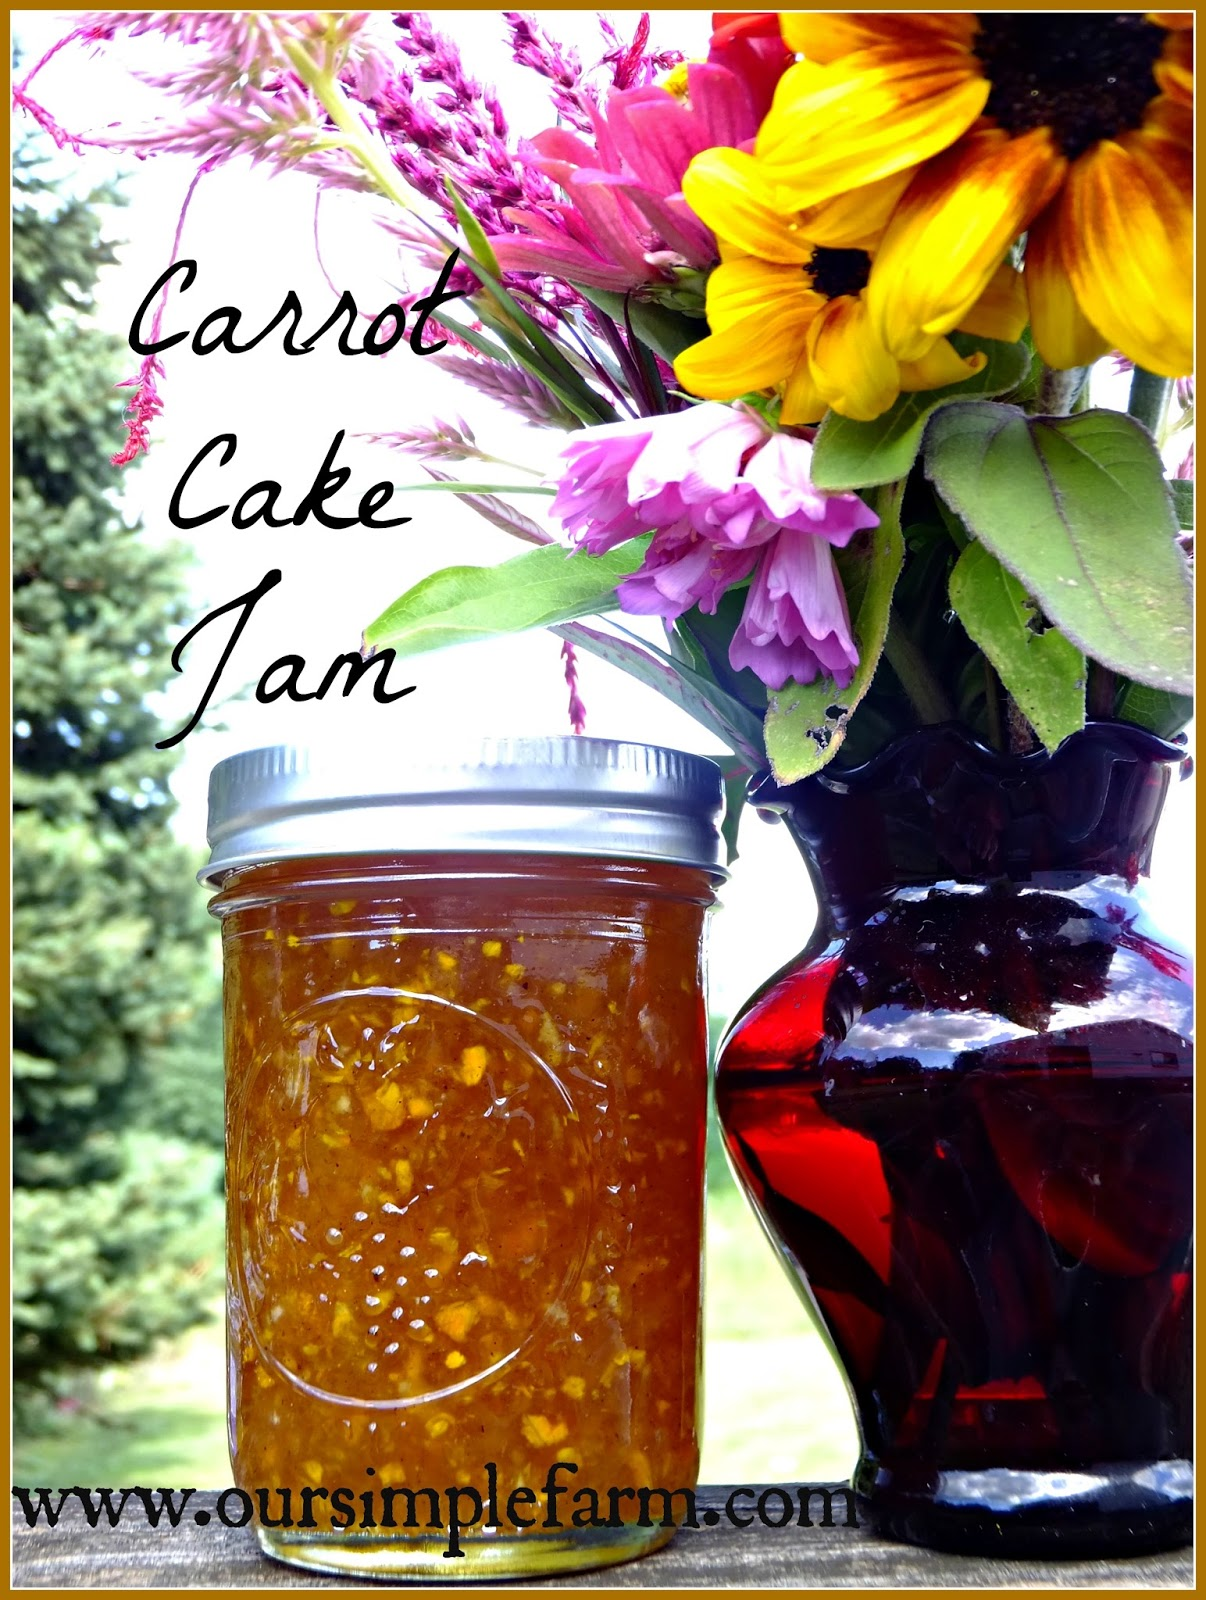 Our Simple Farm: How to Can Glazed Carrots and Carrot Cake Jam